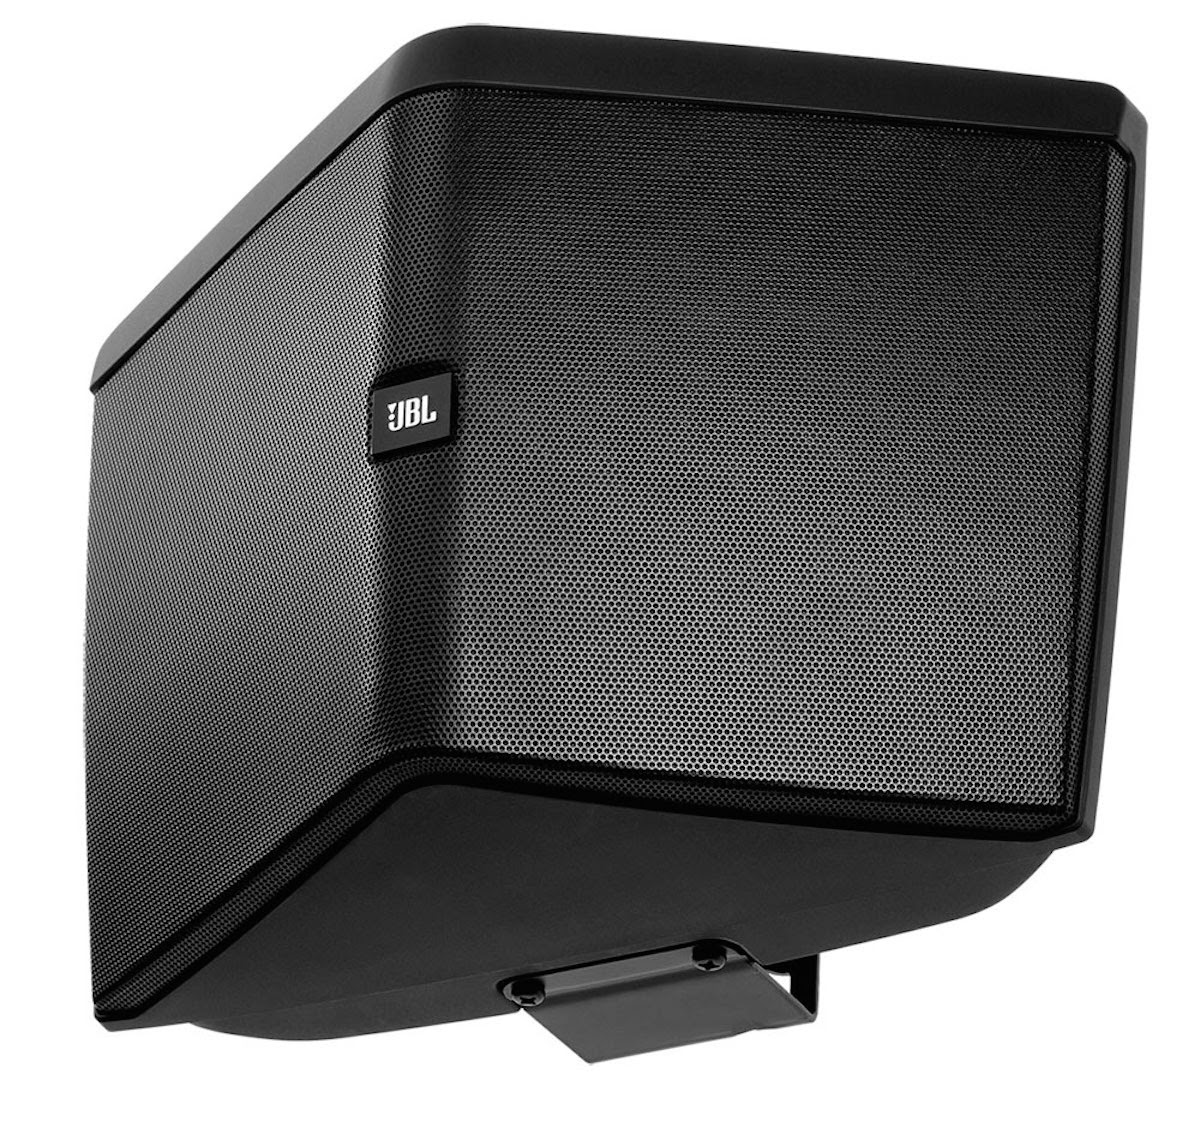 harman s jbl professional introduces control hst wide coverage indoor outdoor speaker with new. Black Bedroom Furniture Sets. Home Design Ideas